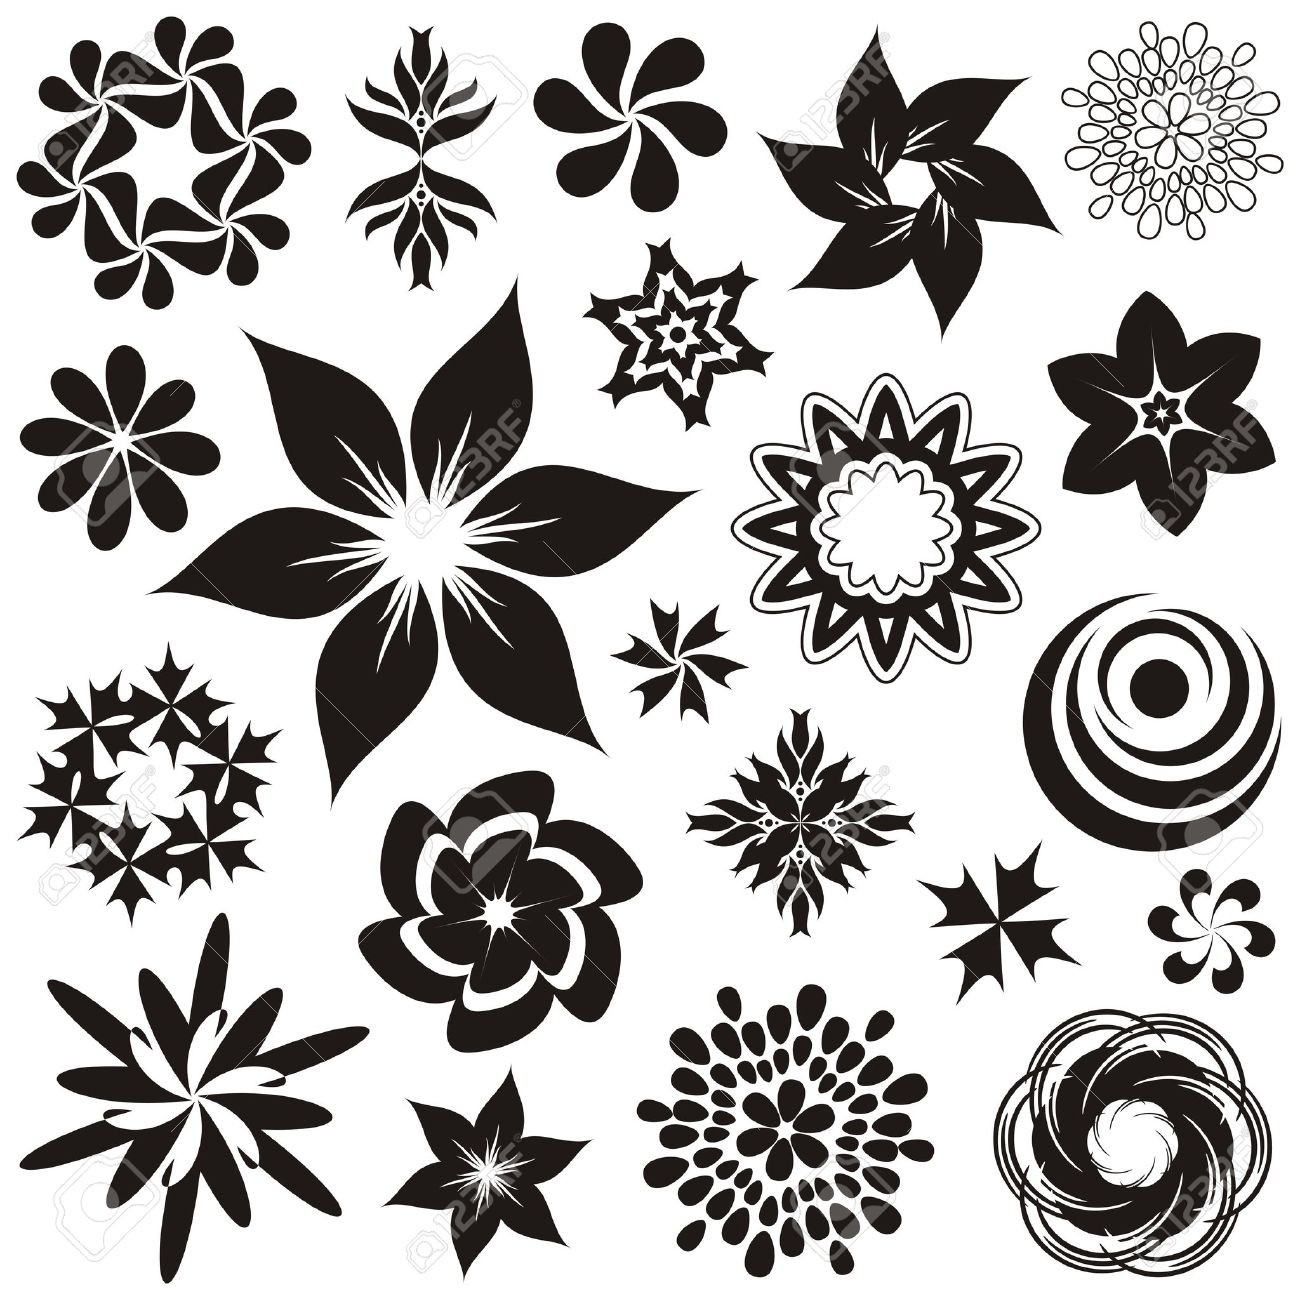 Black and white ornaments - Set Of Black And White Flower Symbols And Ornaments Second Set Stock Vector 22560710